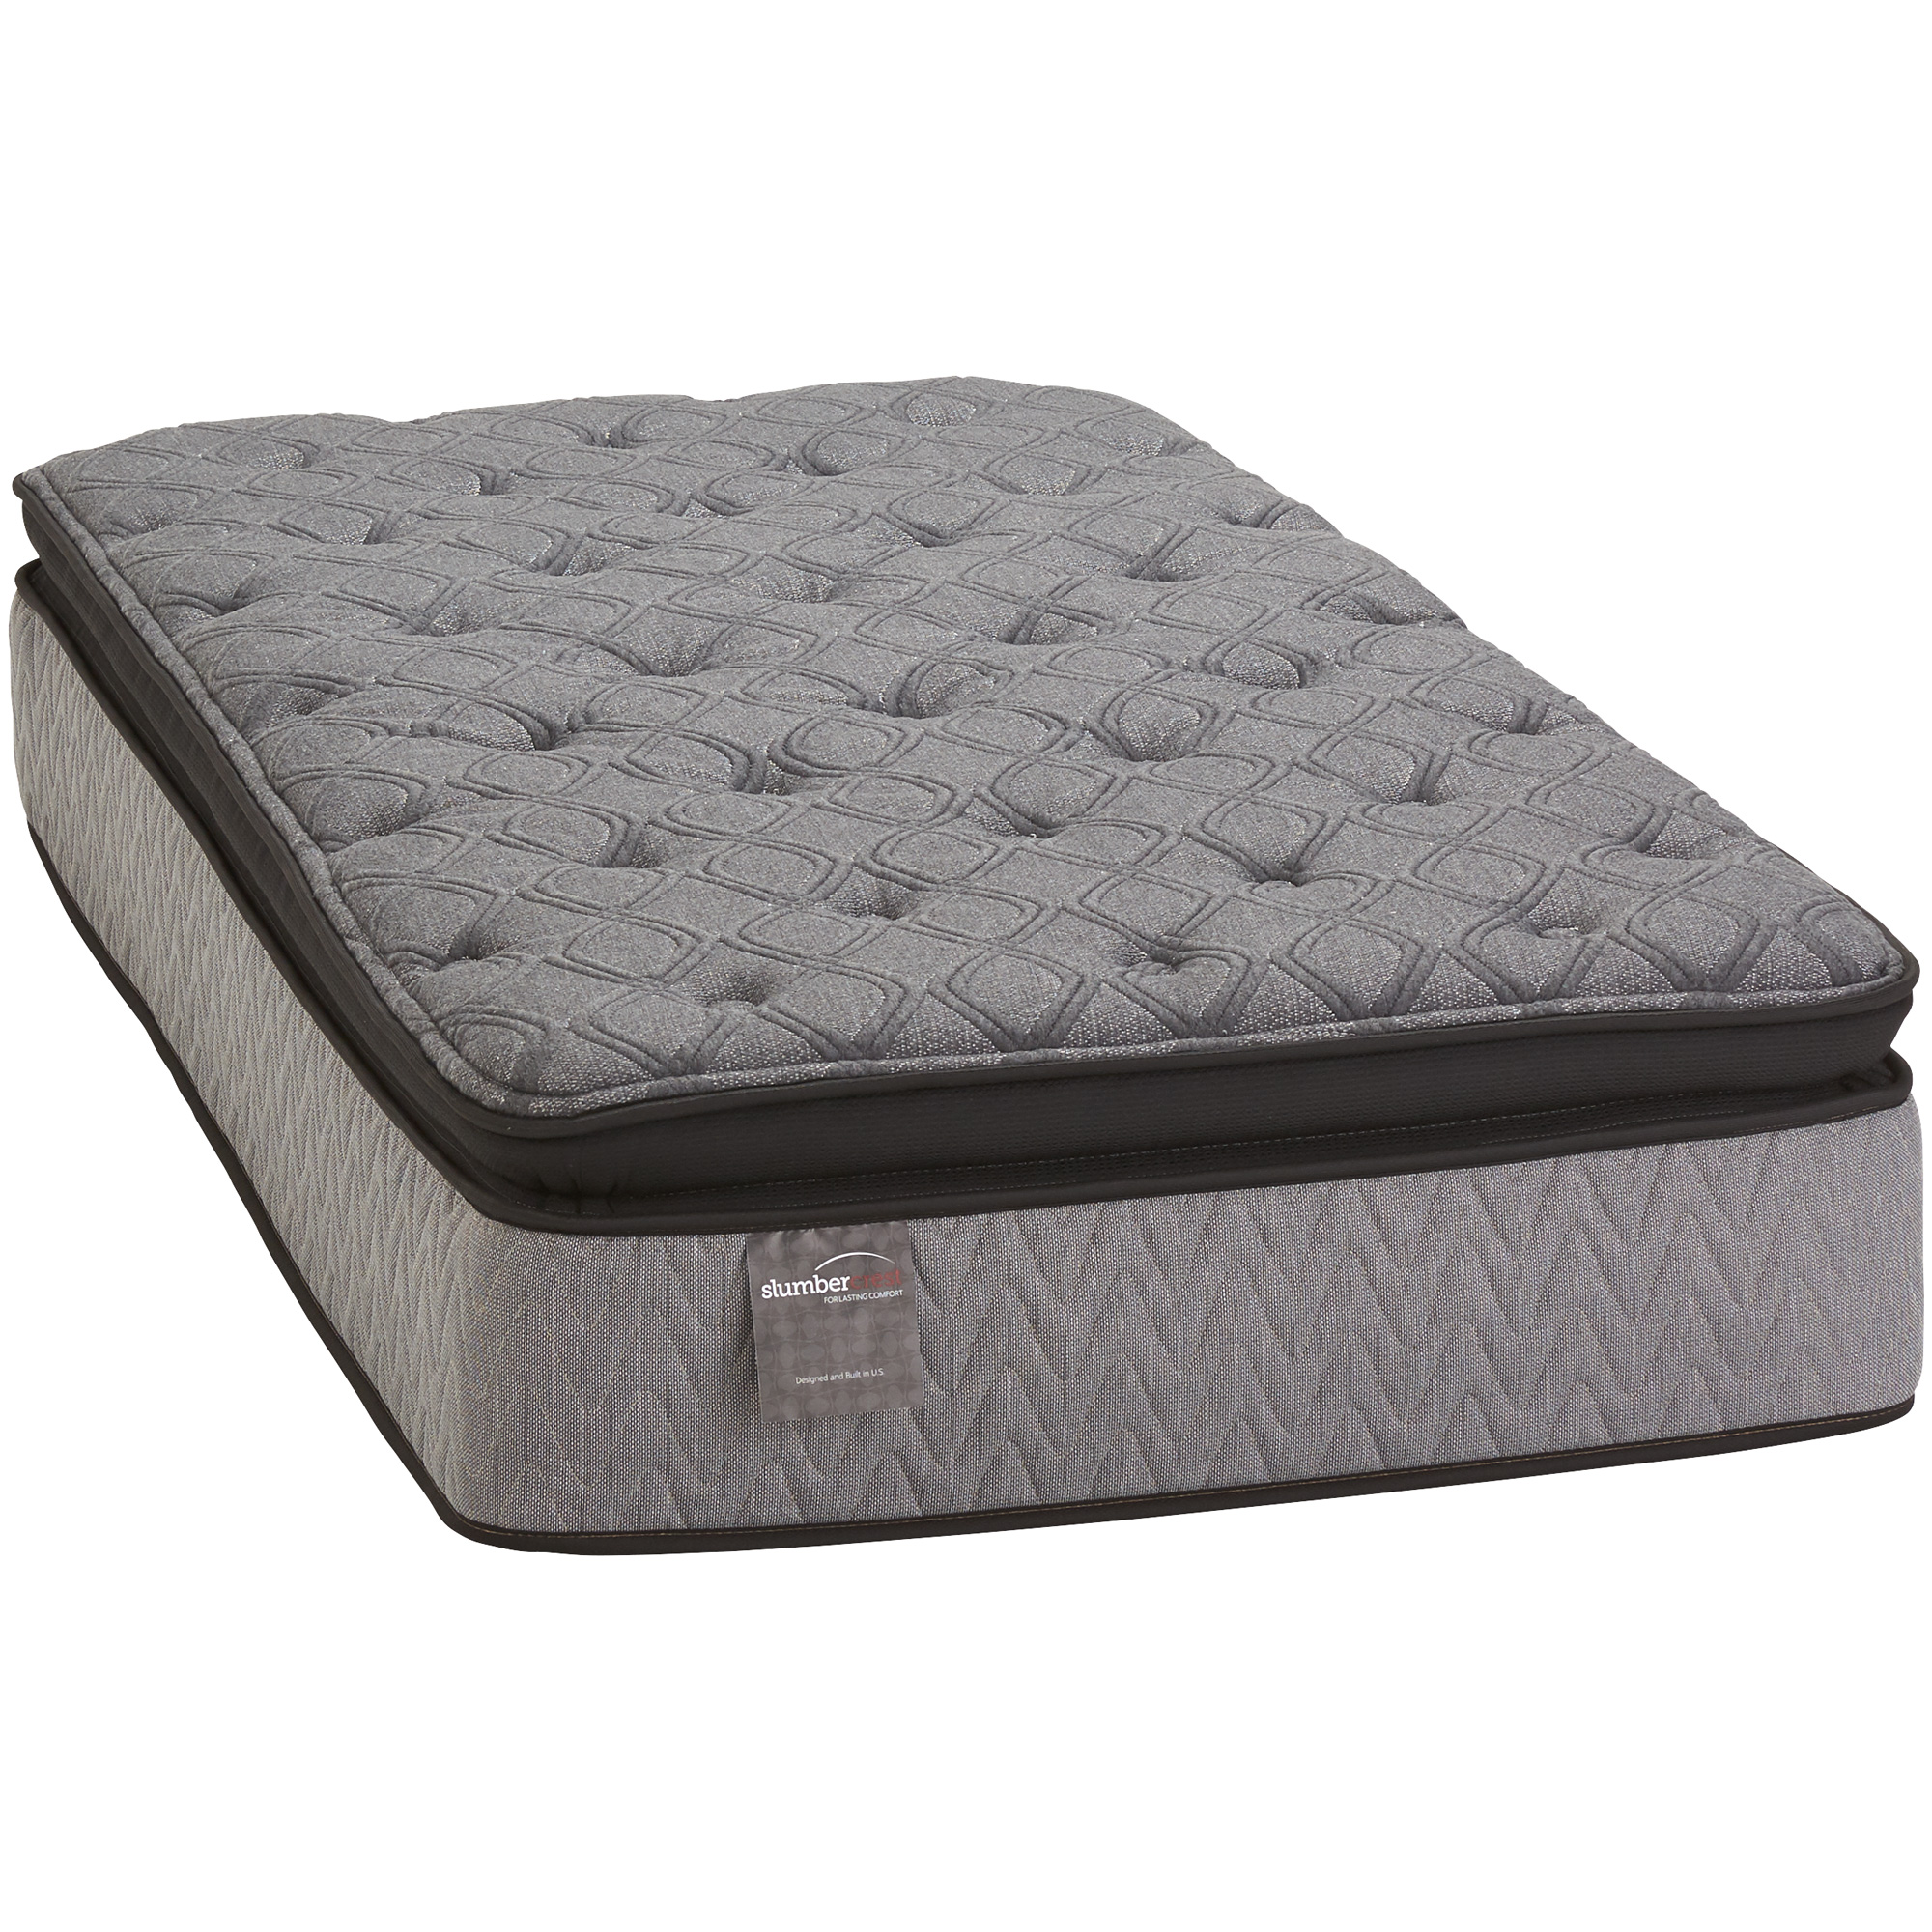 Slumbercrest Plush Pillowtop Twin Mattress